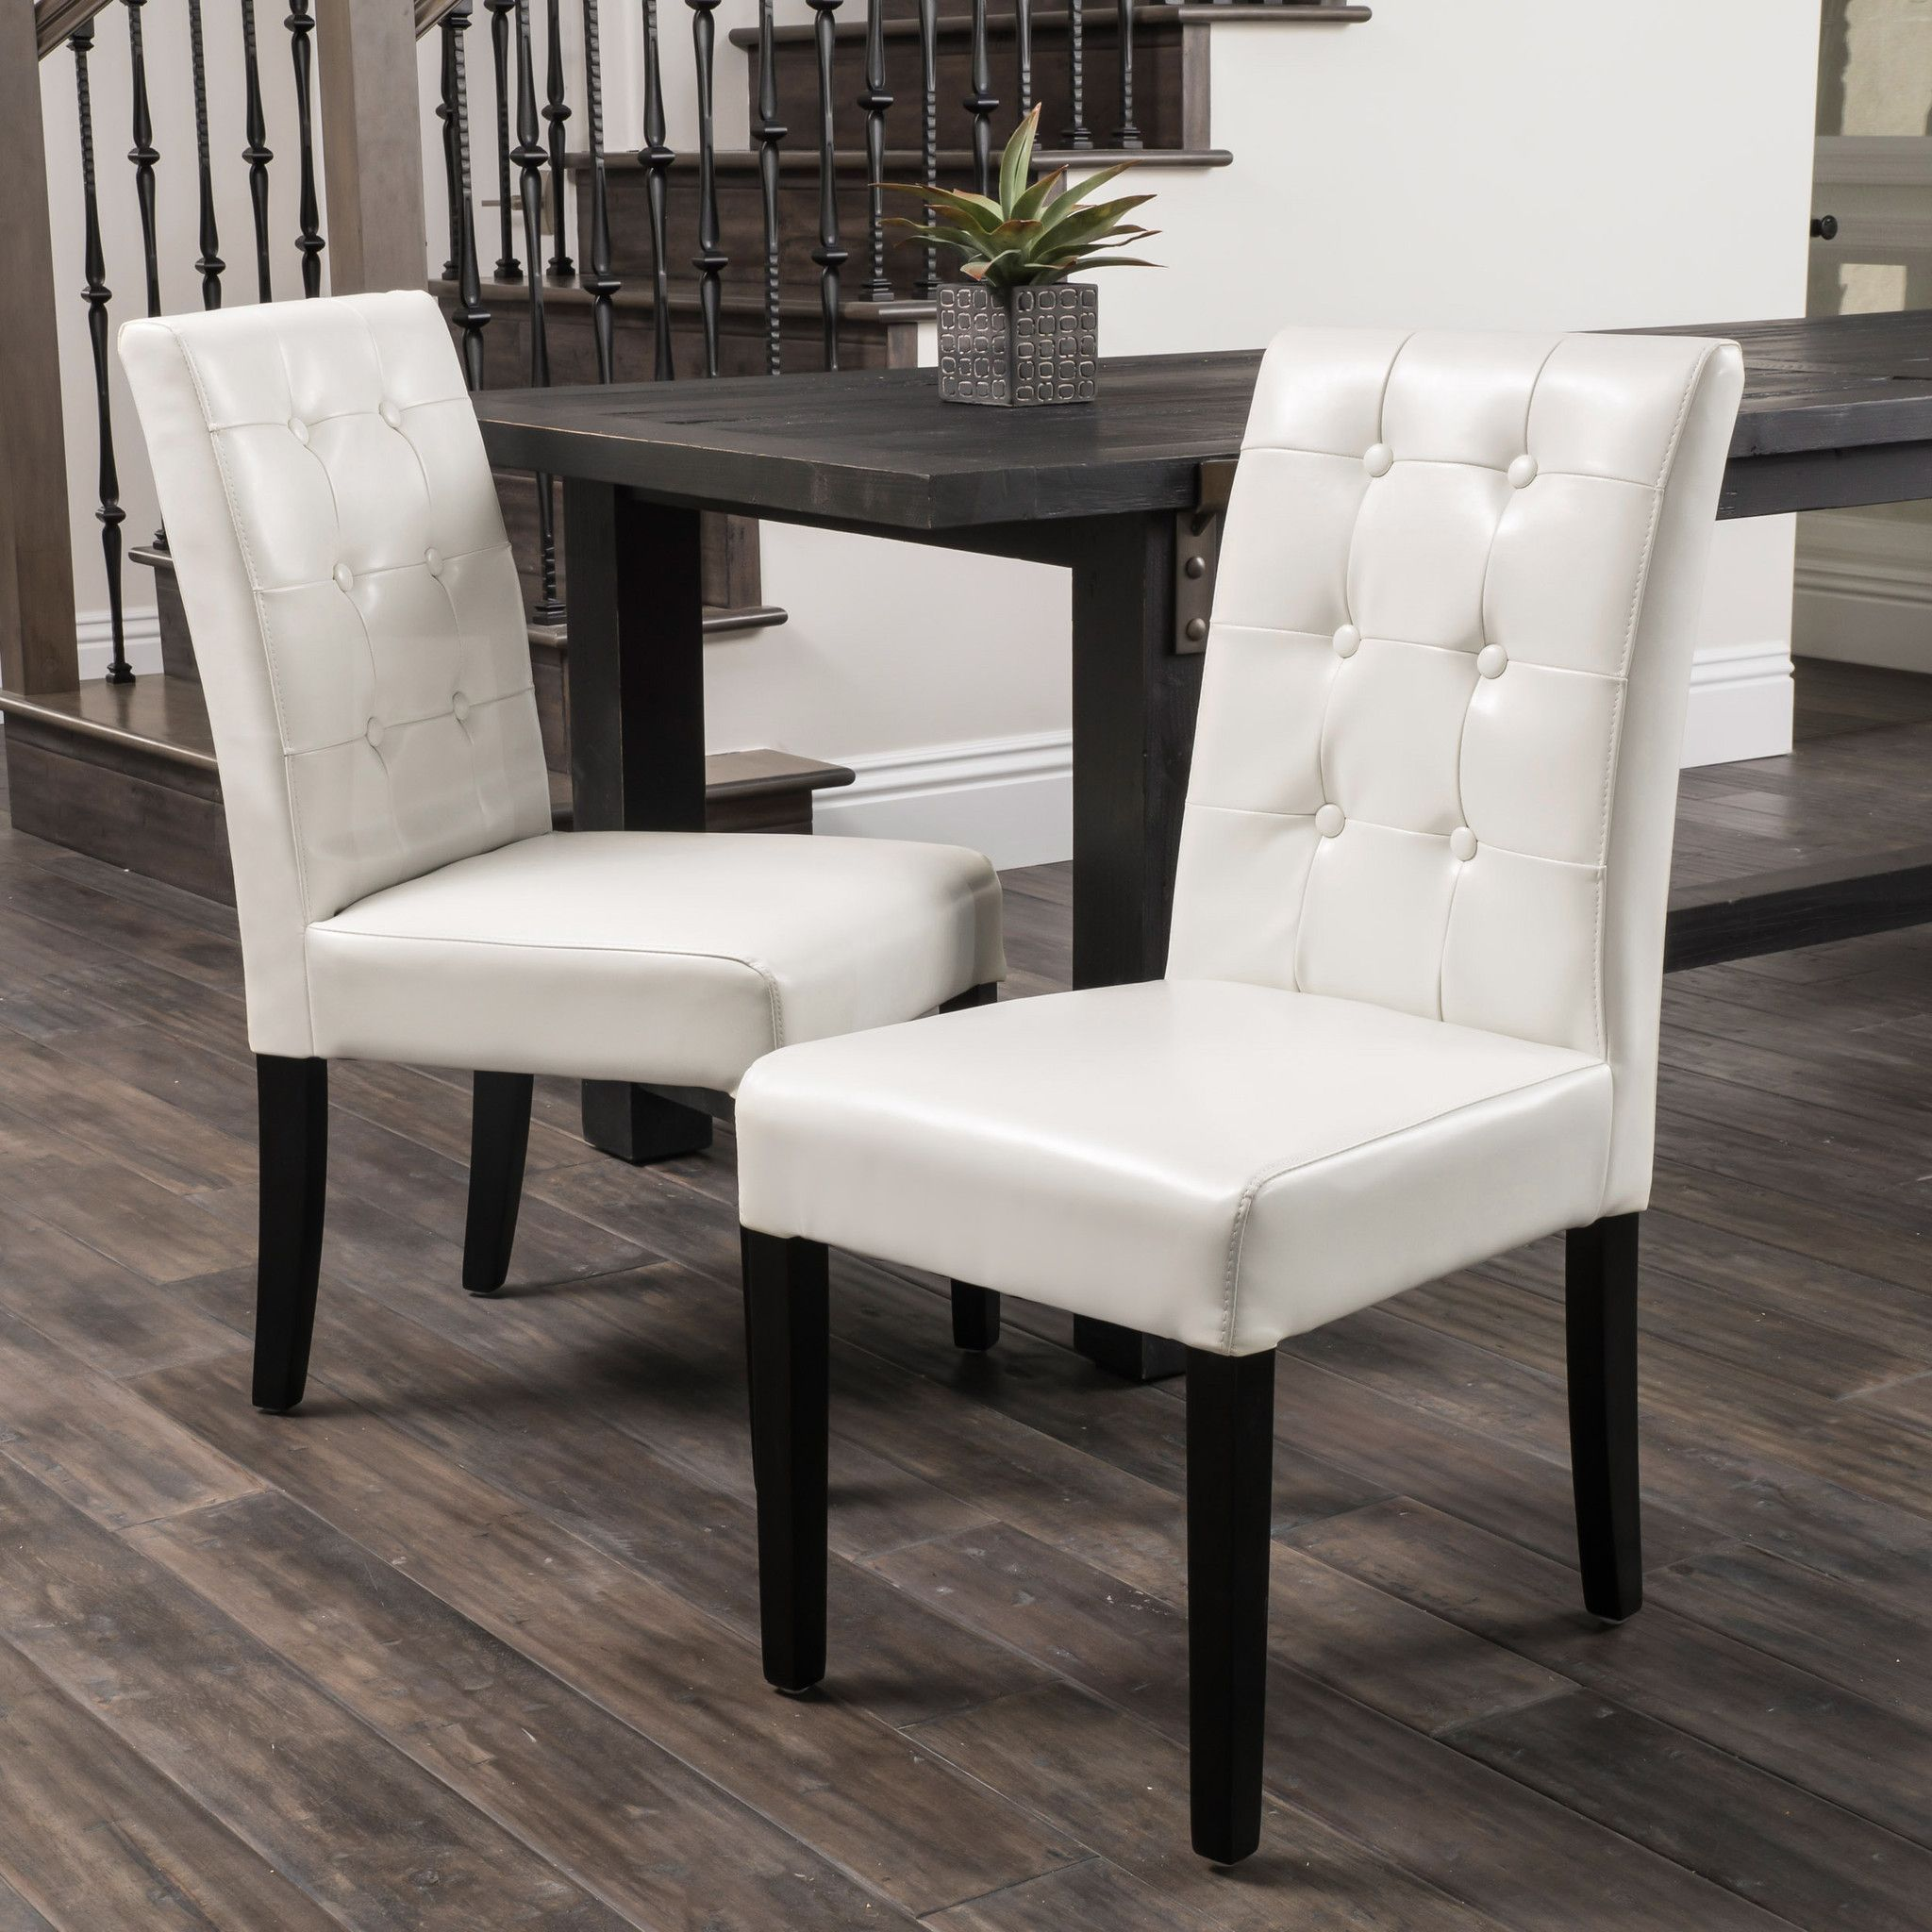 Ivory Dining Room Chairs Captivating Gillian Ivory Leather Dining Chairs Set Of 2  Dining Chair Set Inspiration